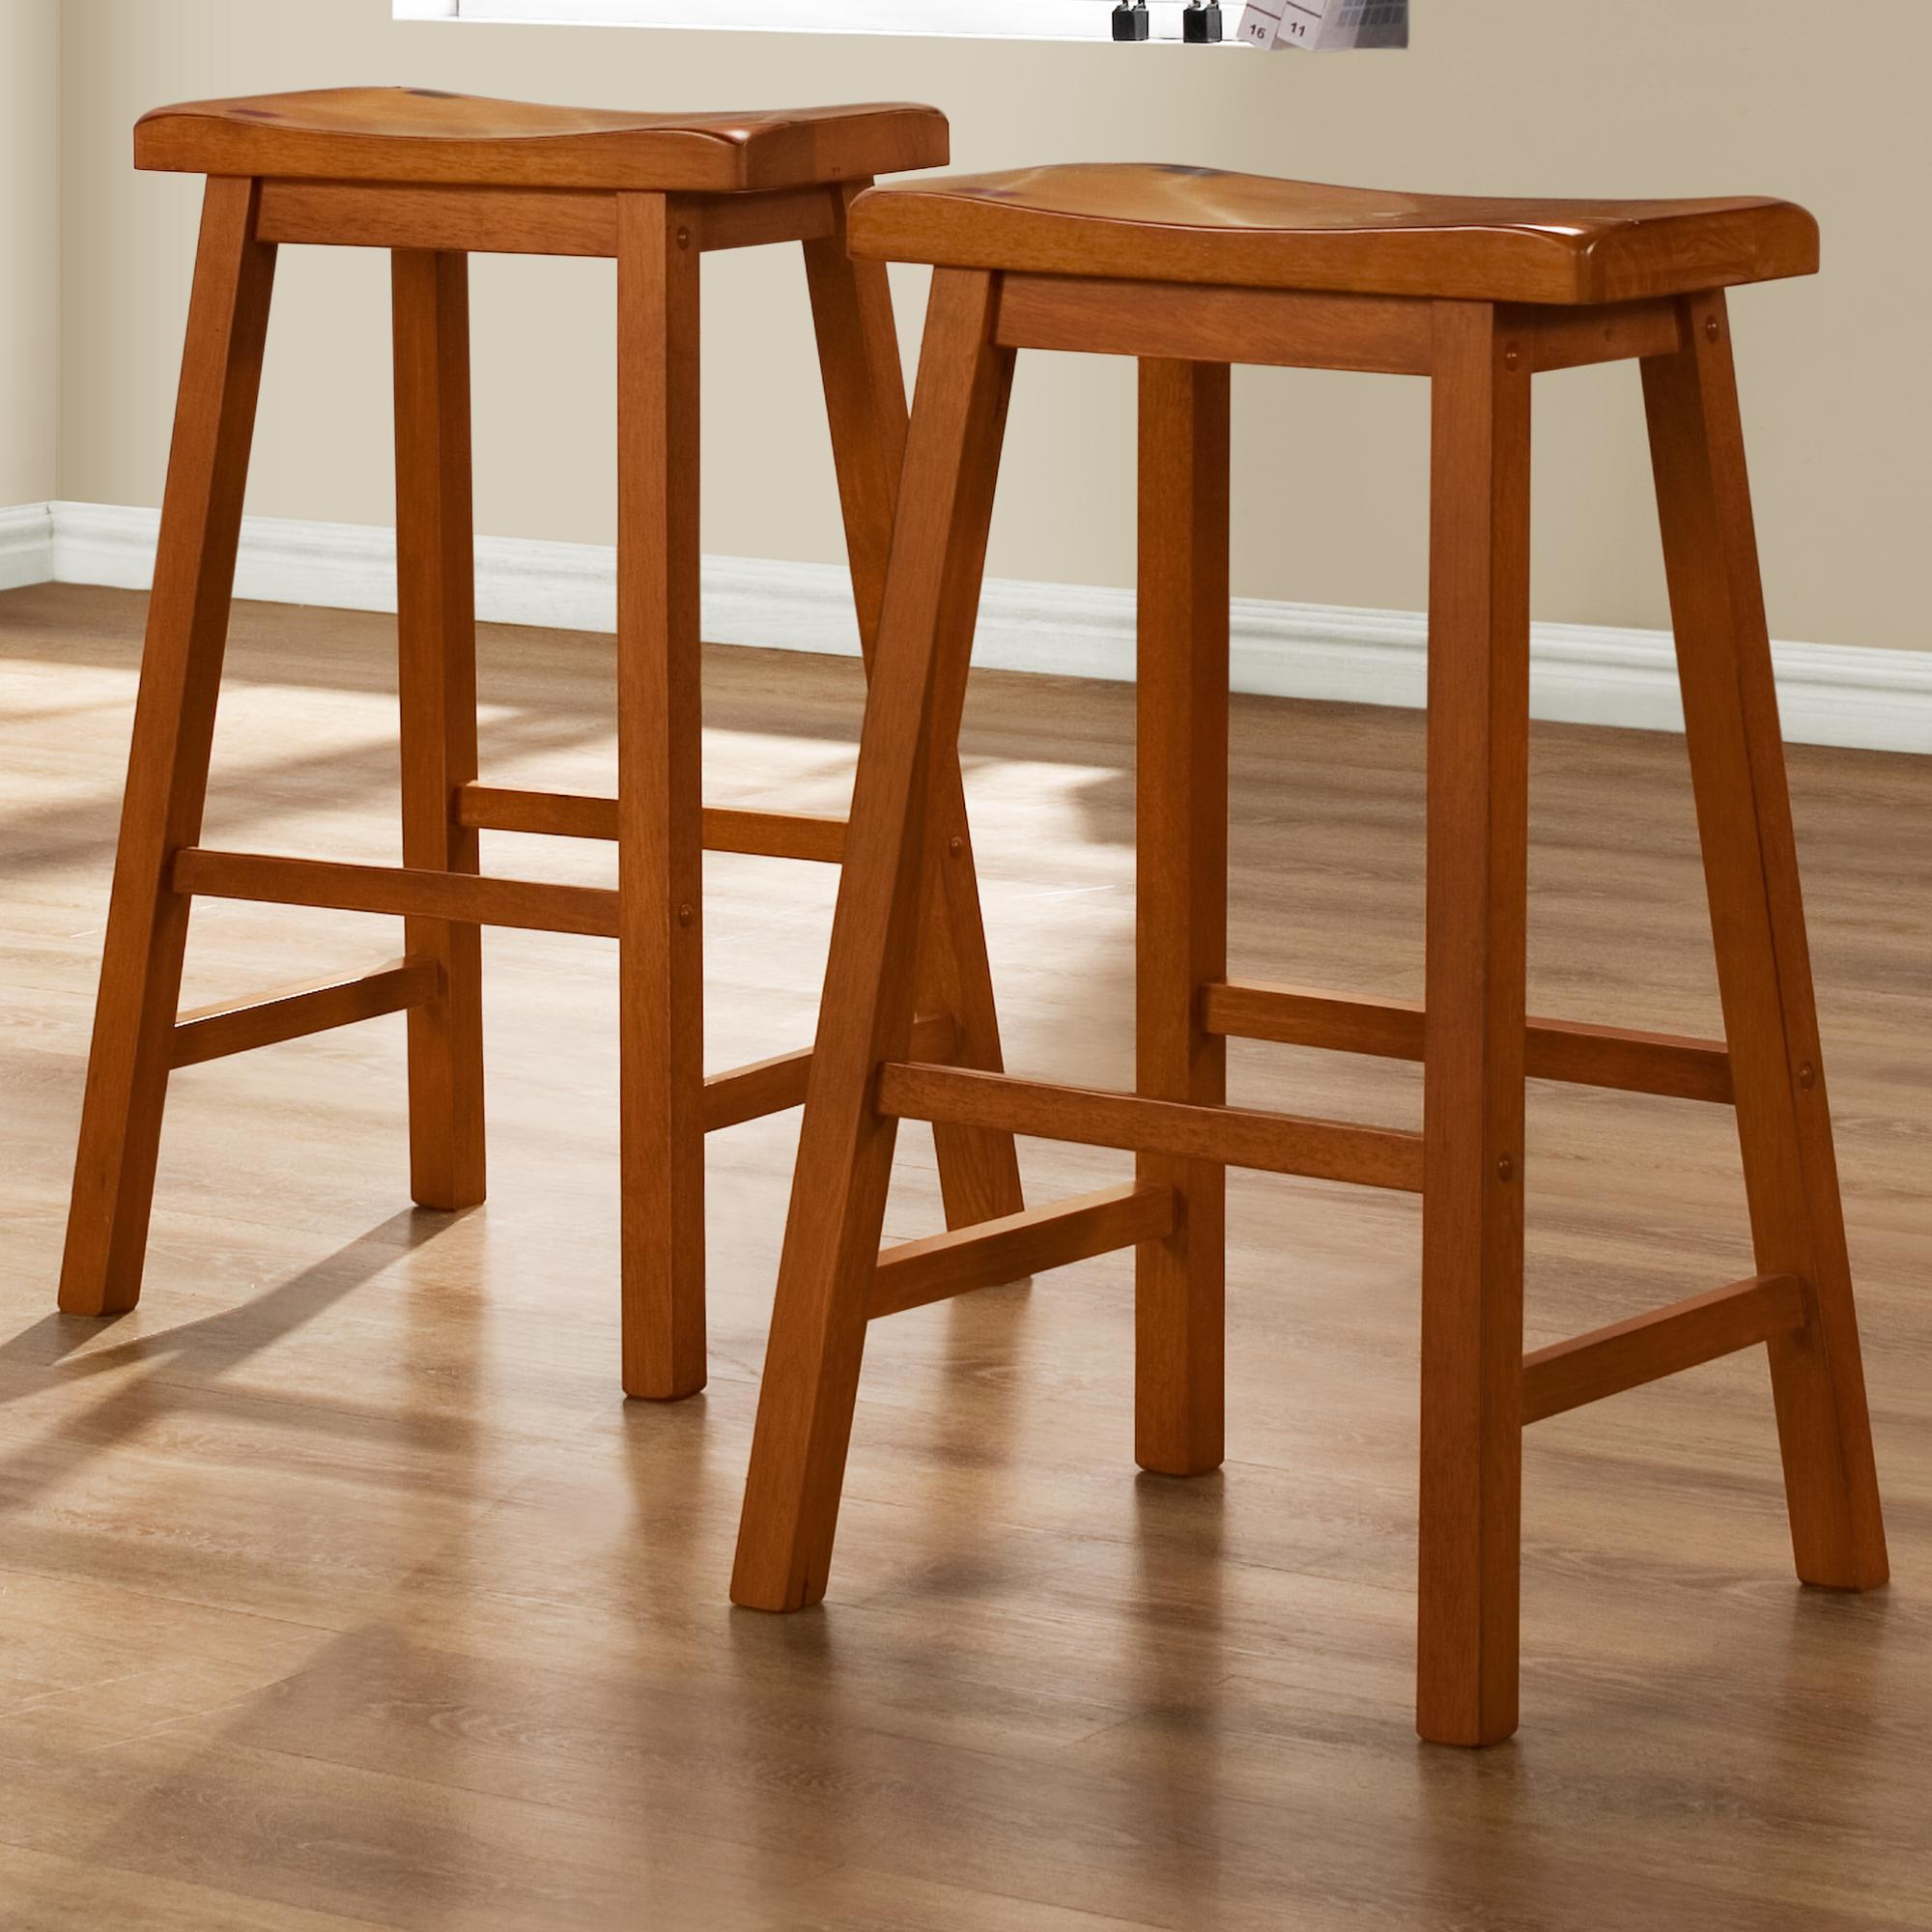 Homelegance 5302 29 Inch Stool - Item Number: 5302A29